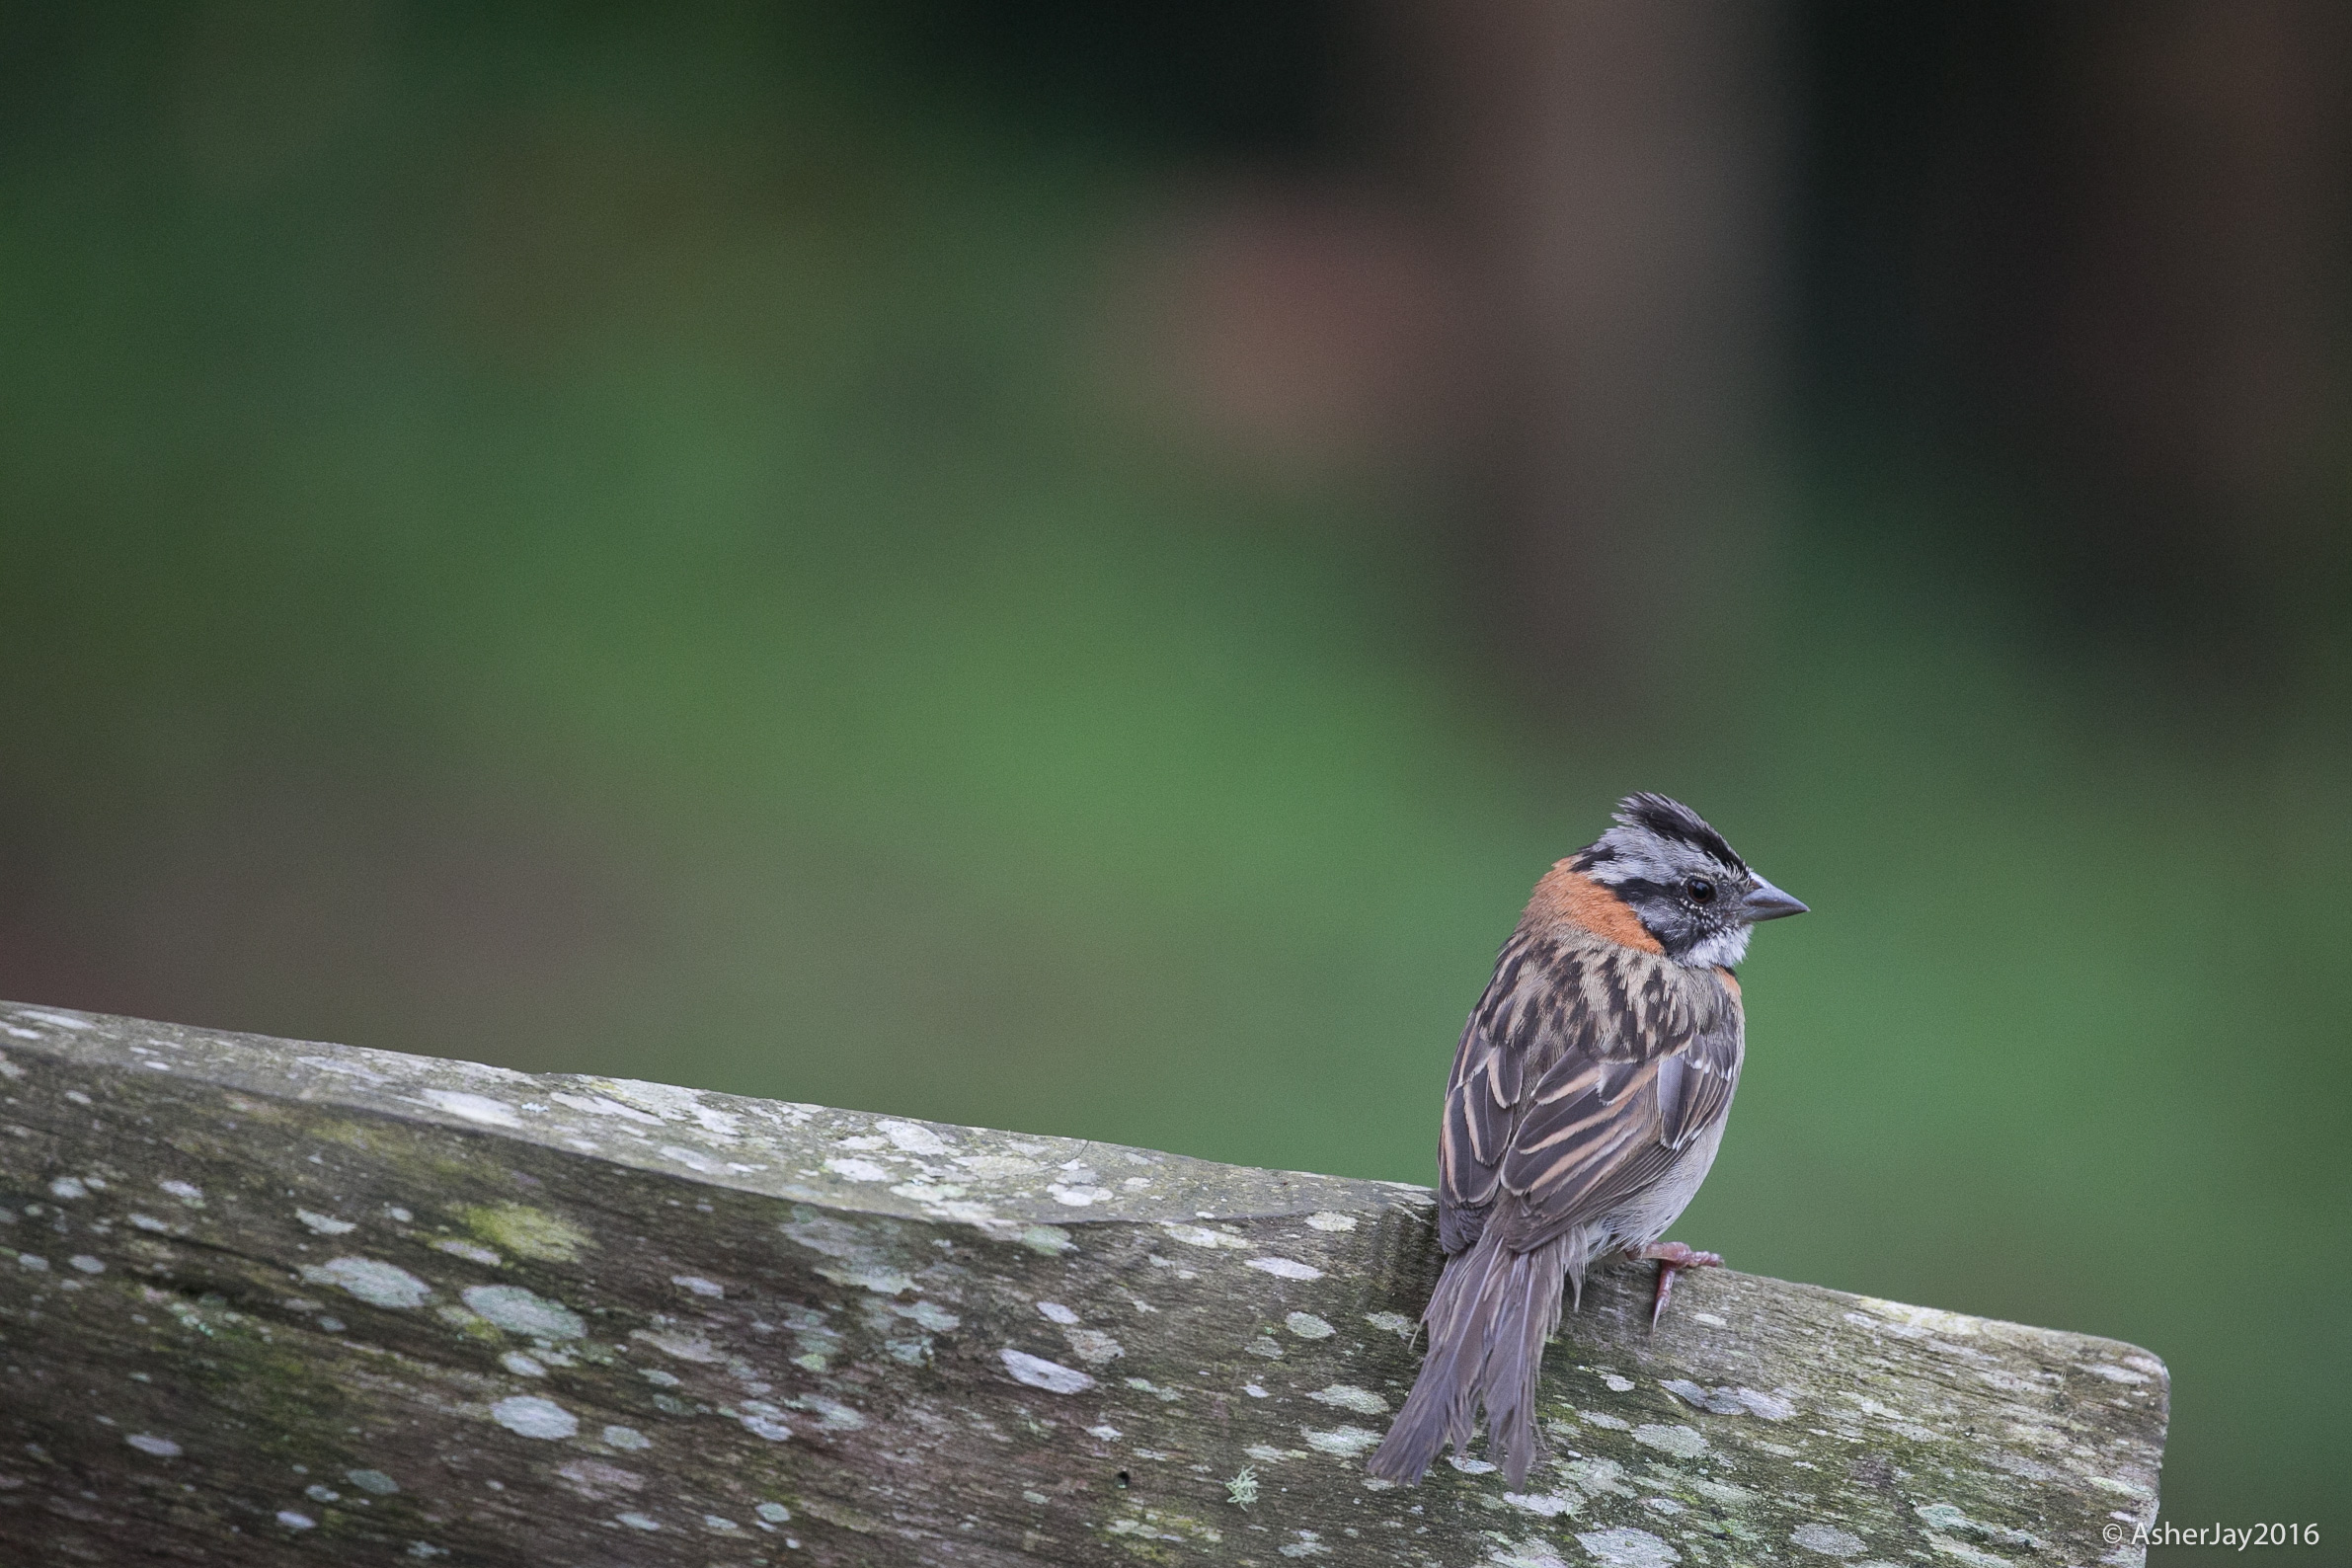 Rufous-collared Sparrow. Something known, now for something new, something burrowed, and something blue.